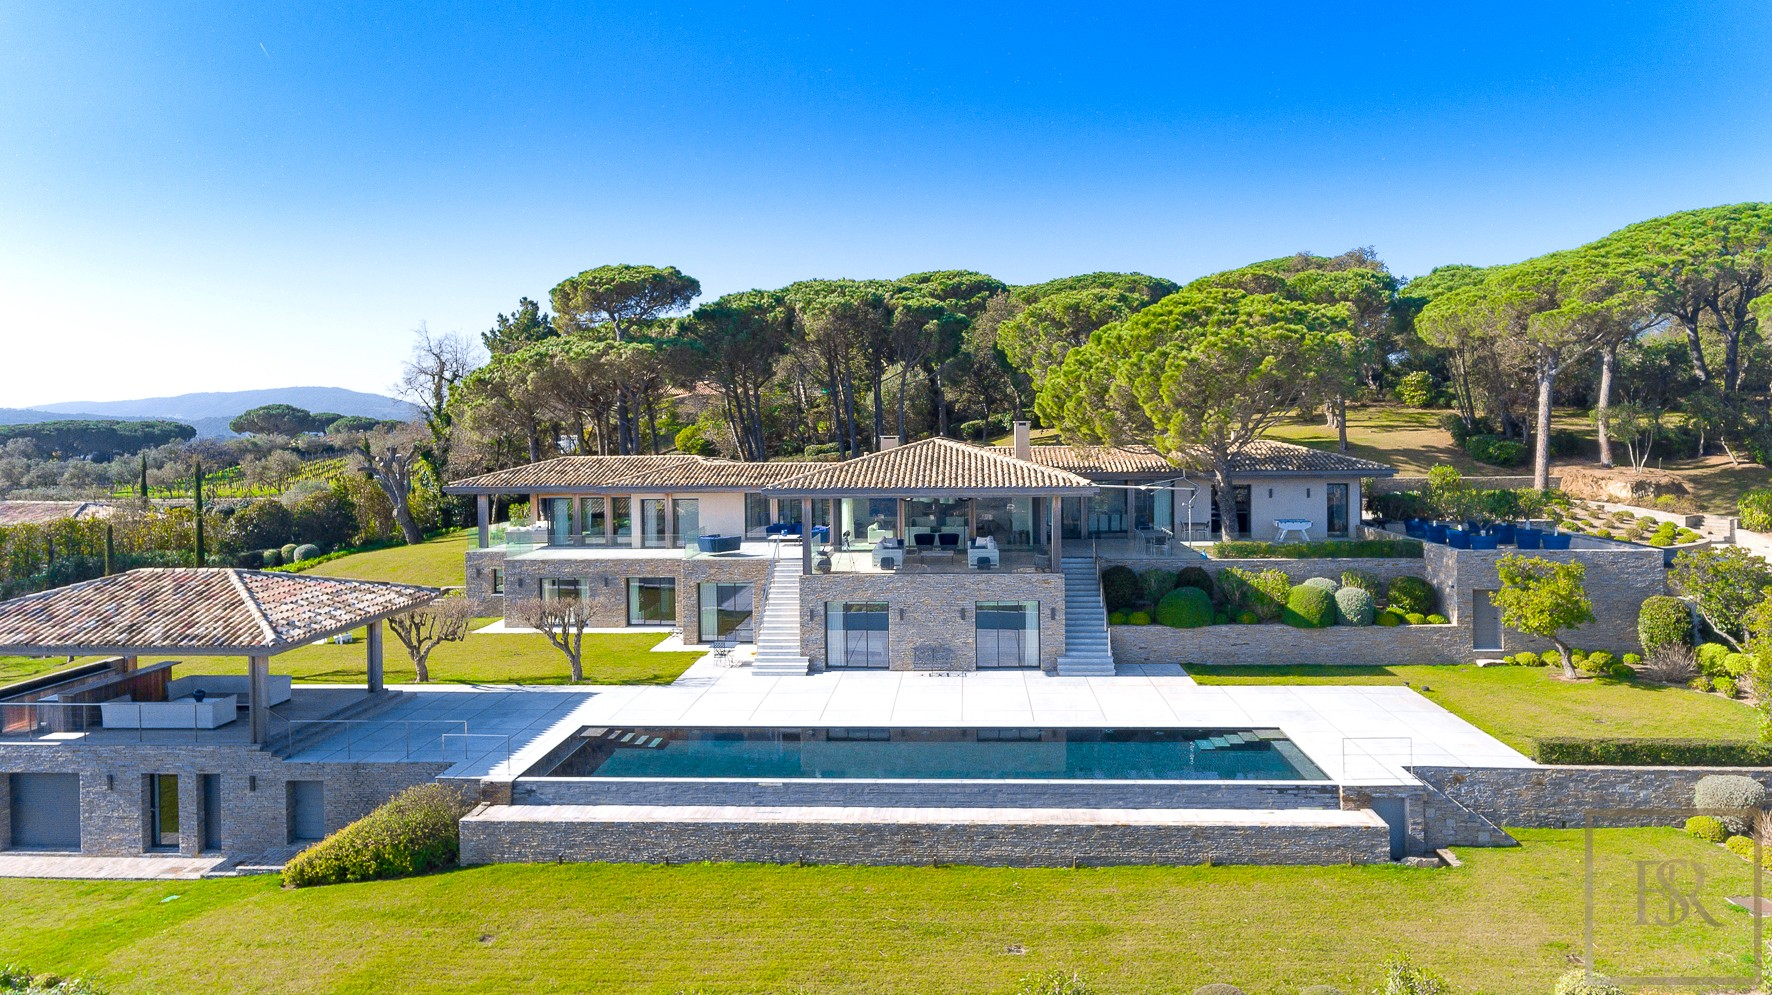 For super rich ultra luxury real estate properties homes, most expensive houses, rent unique penthouse apartment and ultimate villa in Saint-Tropez France for rent holiday French riviera